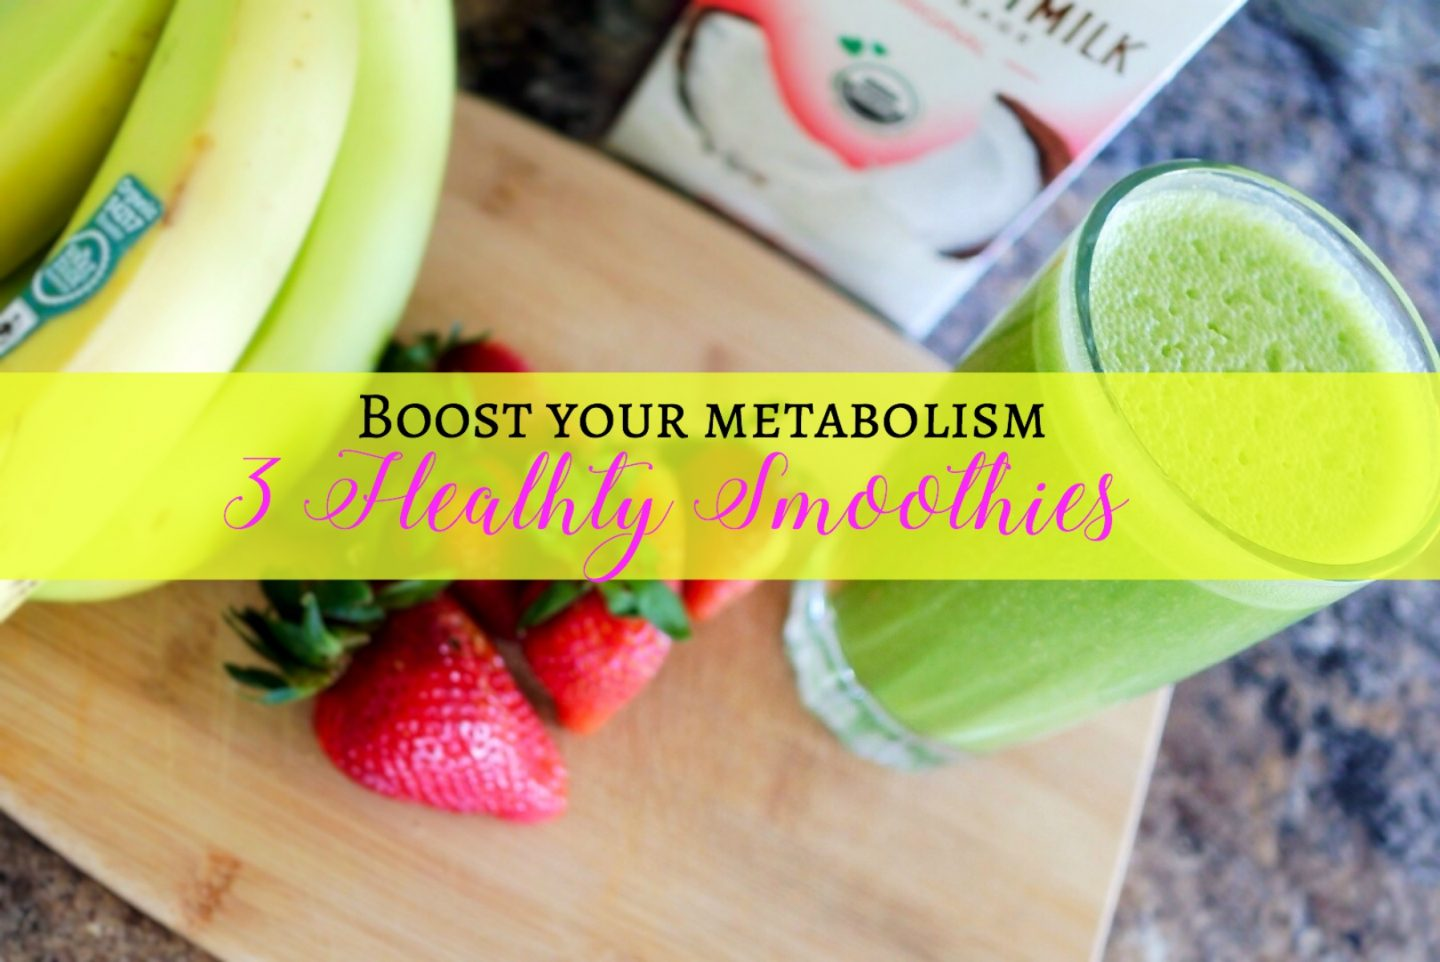 3 Metabolism Boosting Smoothies